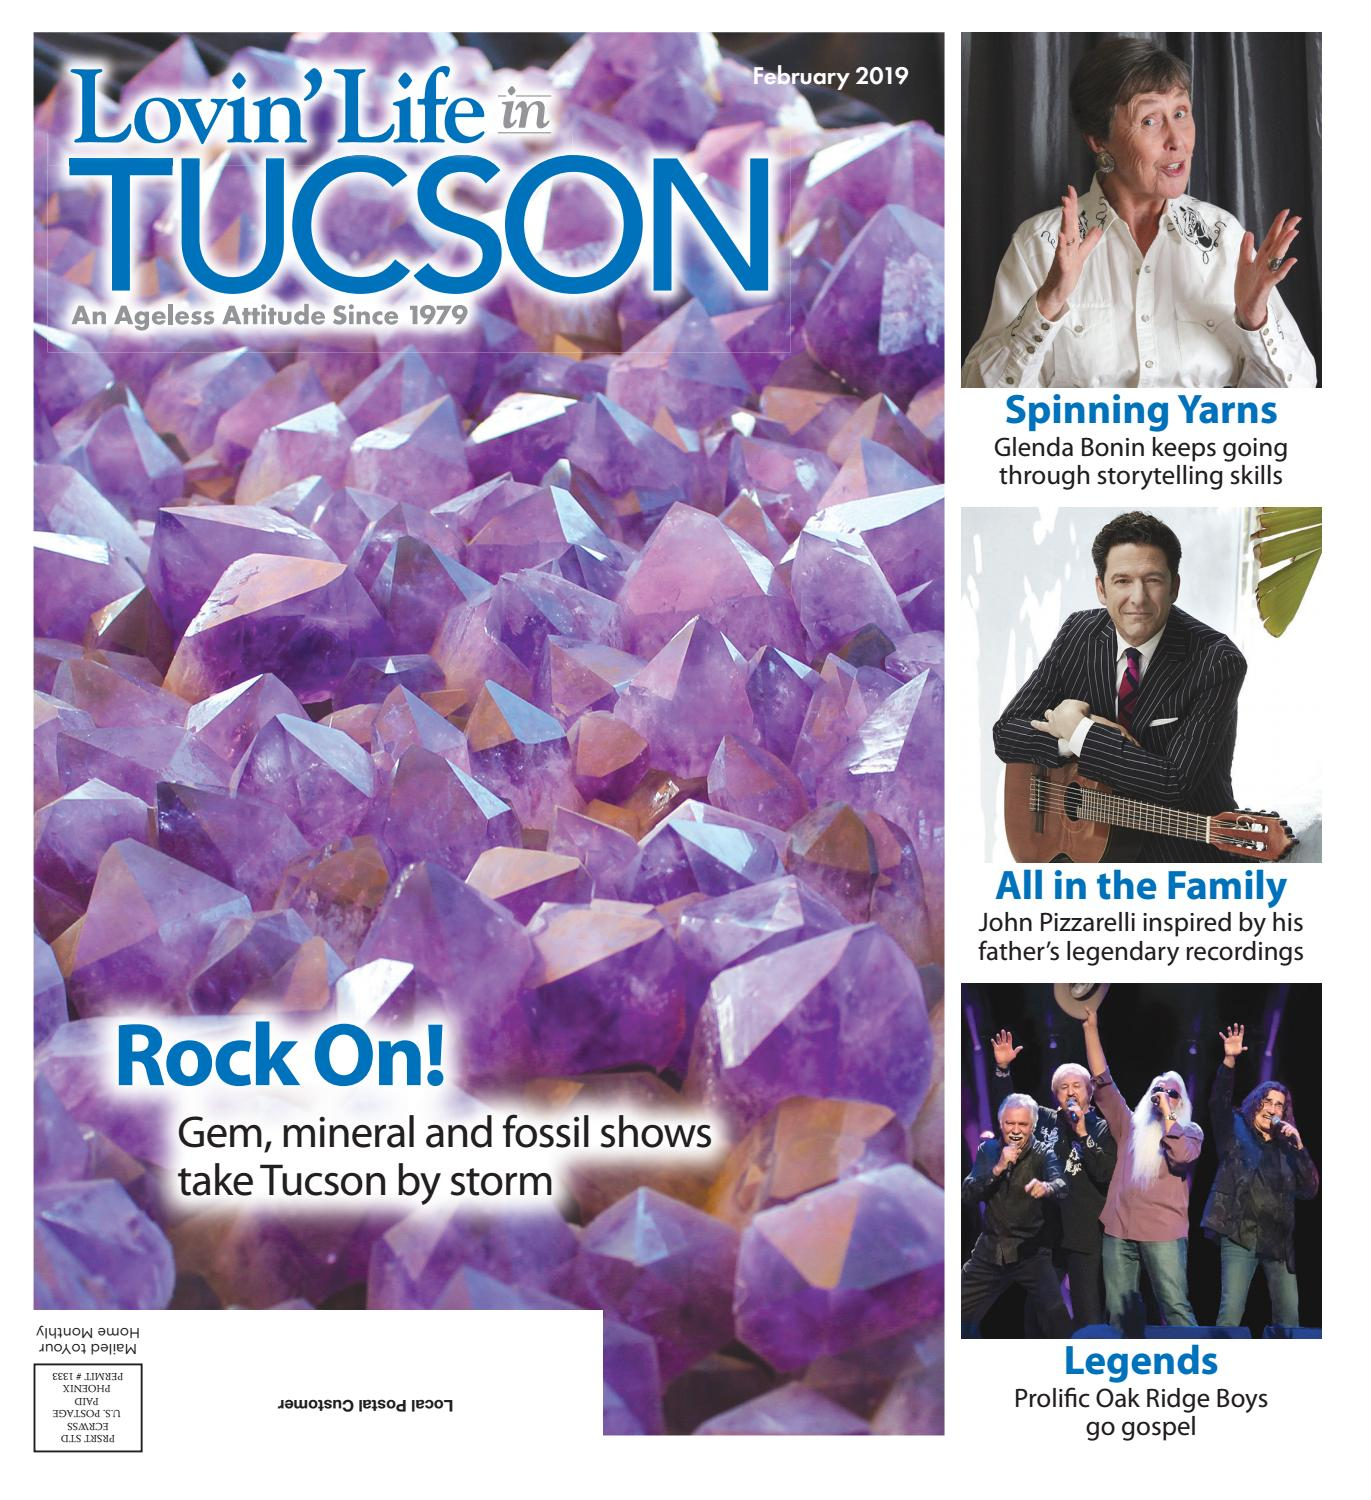 Lovin Life After 50: TucsonFebruary 2019 by Times Media